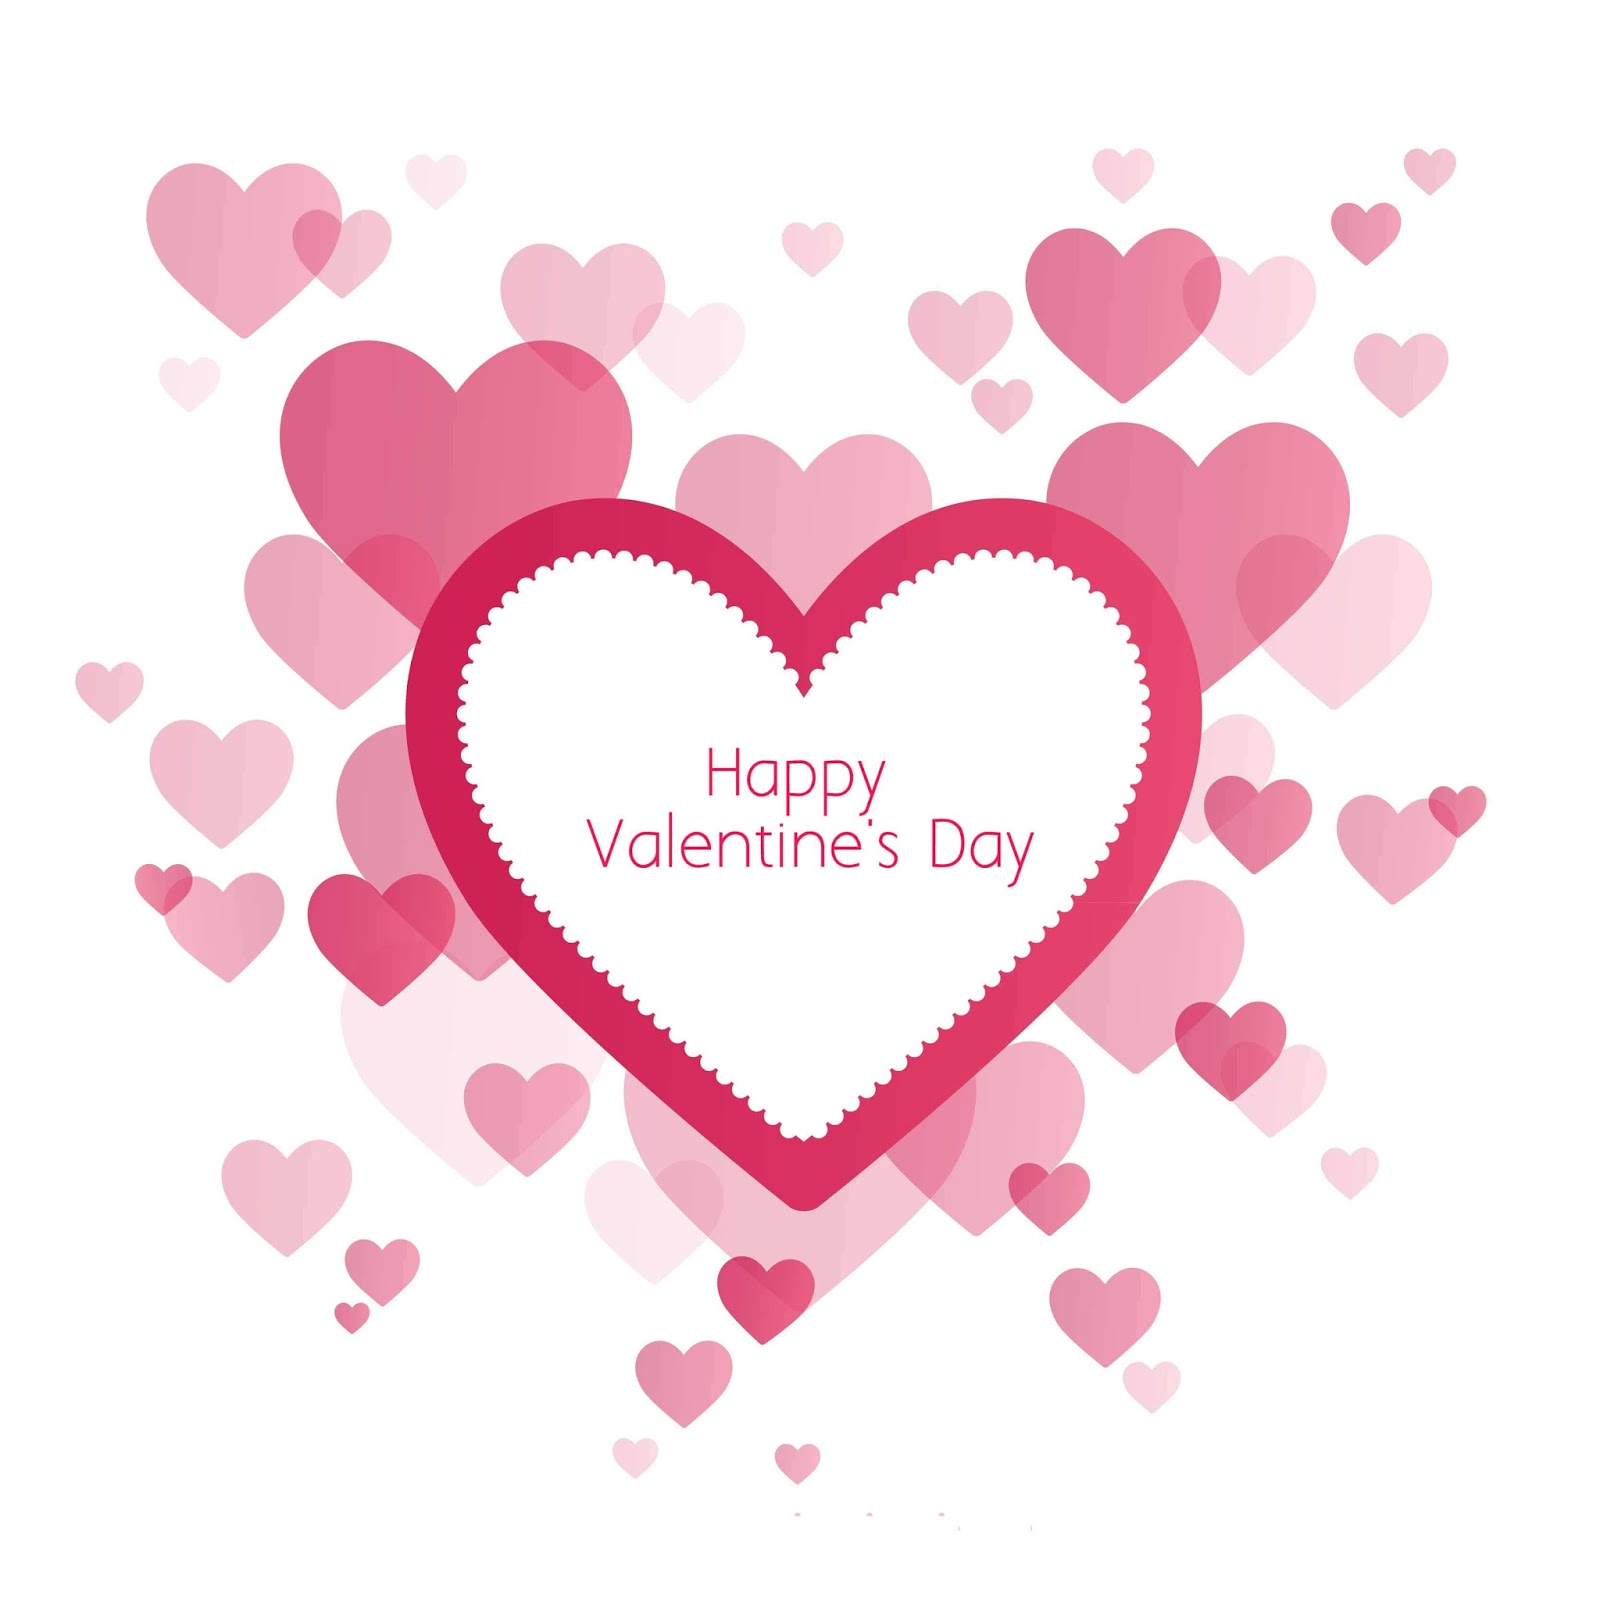 valentines day heart pictures, images